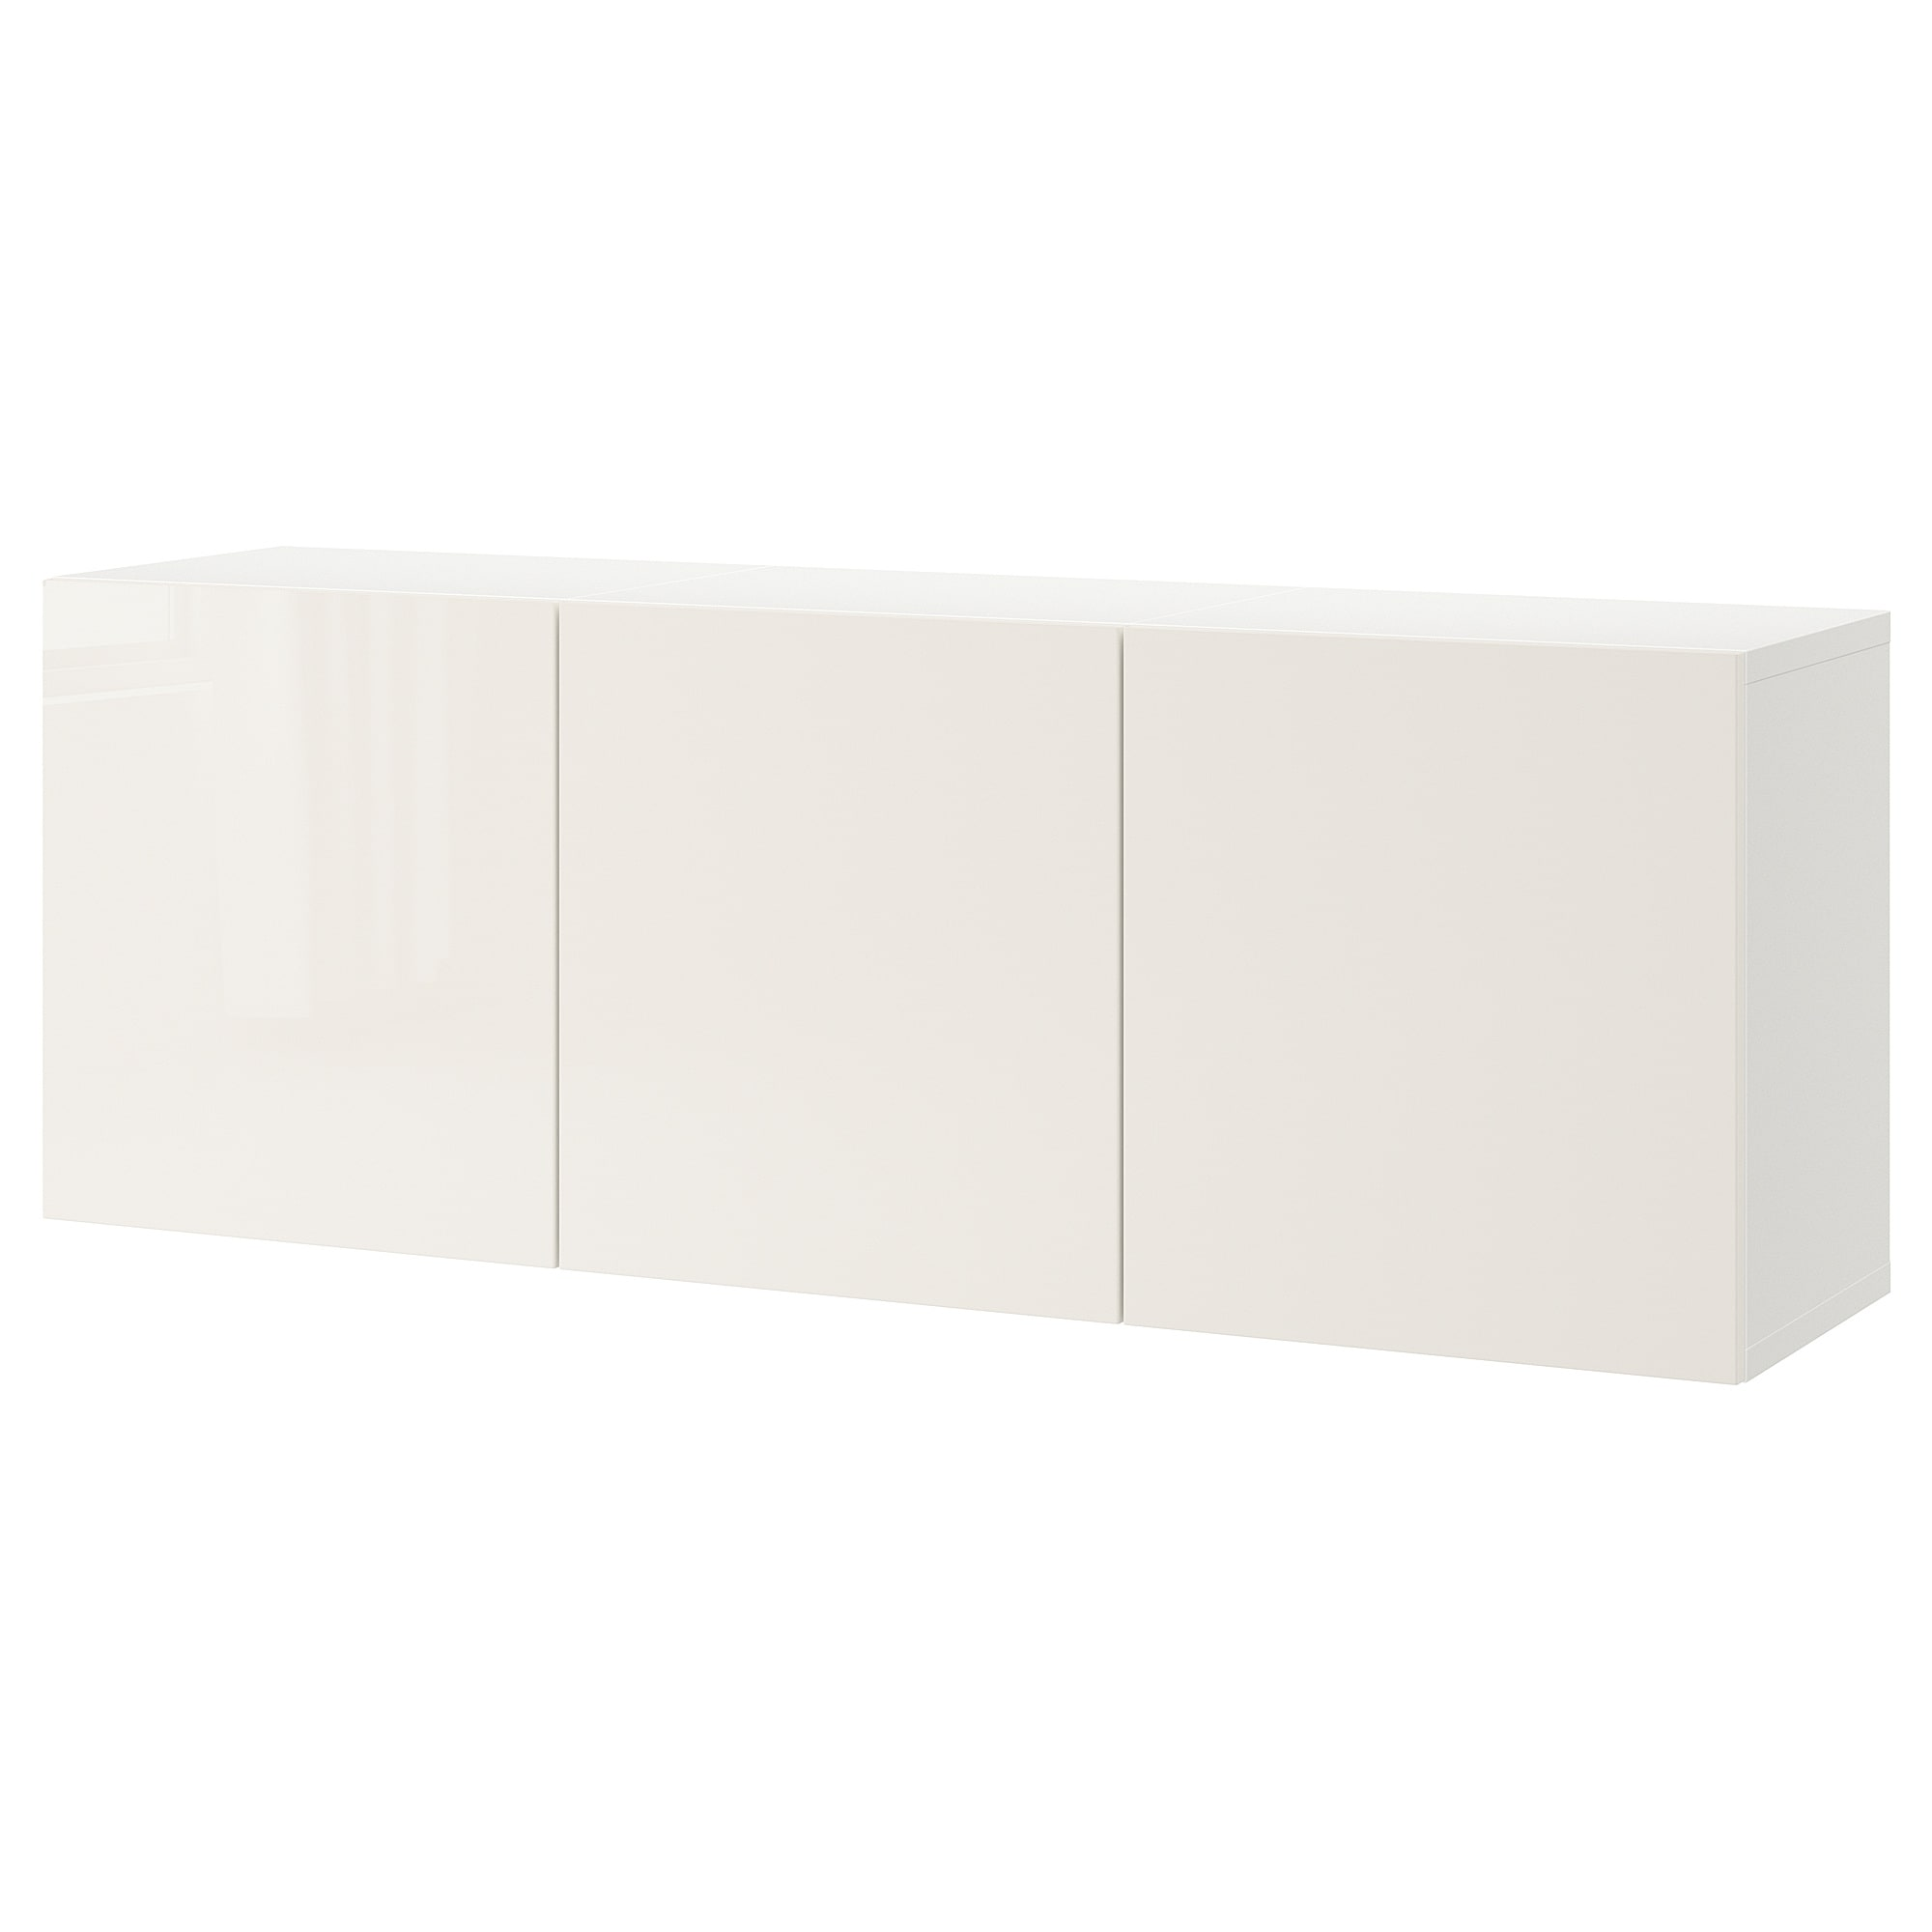 Wall Mounted Cabinet Combination BestÅ White Selsviken High Gloss